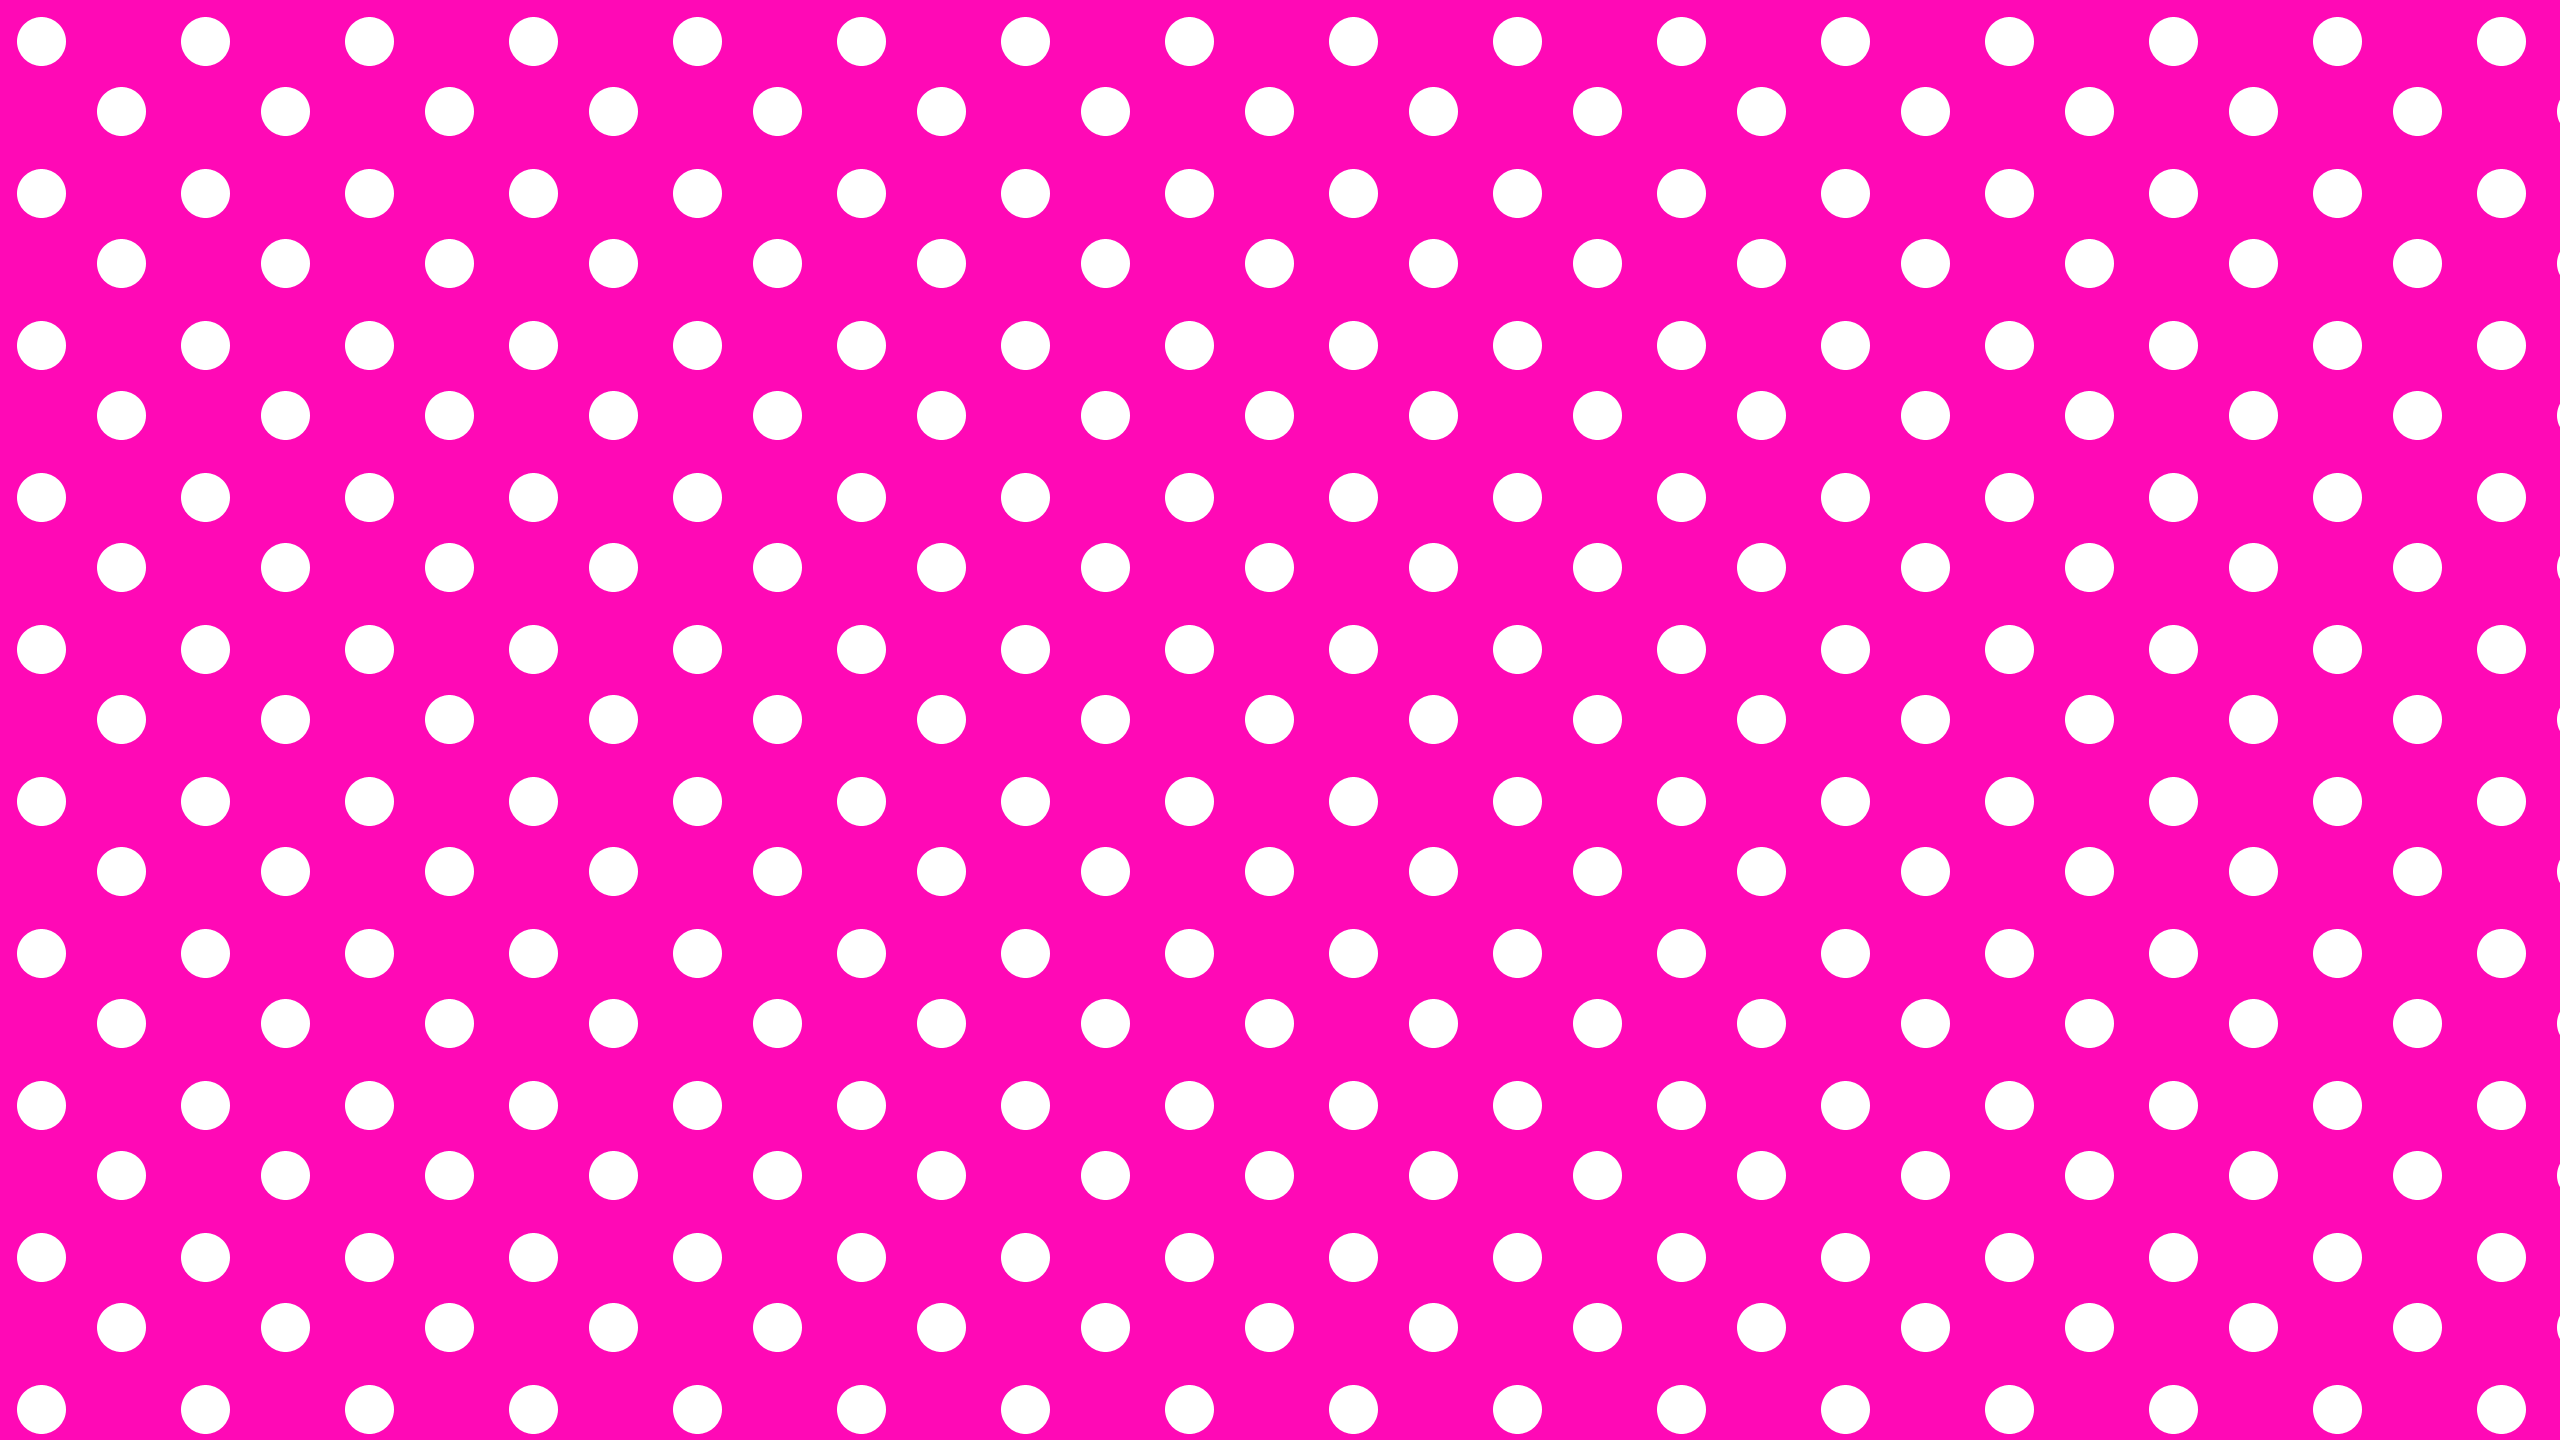 pink polka dot wallpaper wallpapersafari